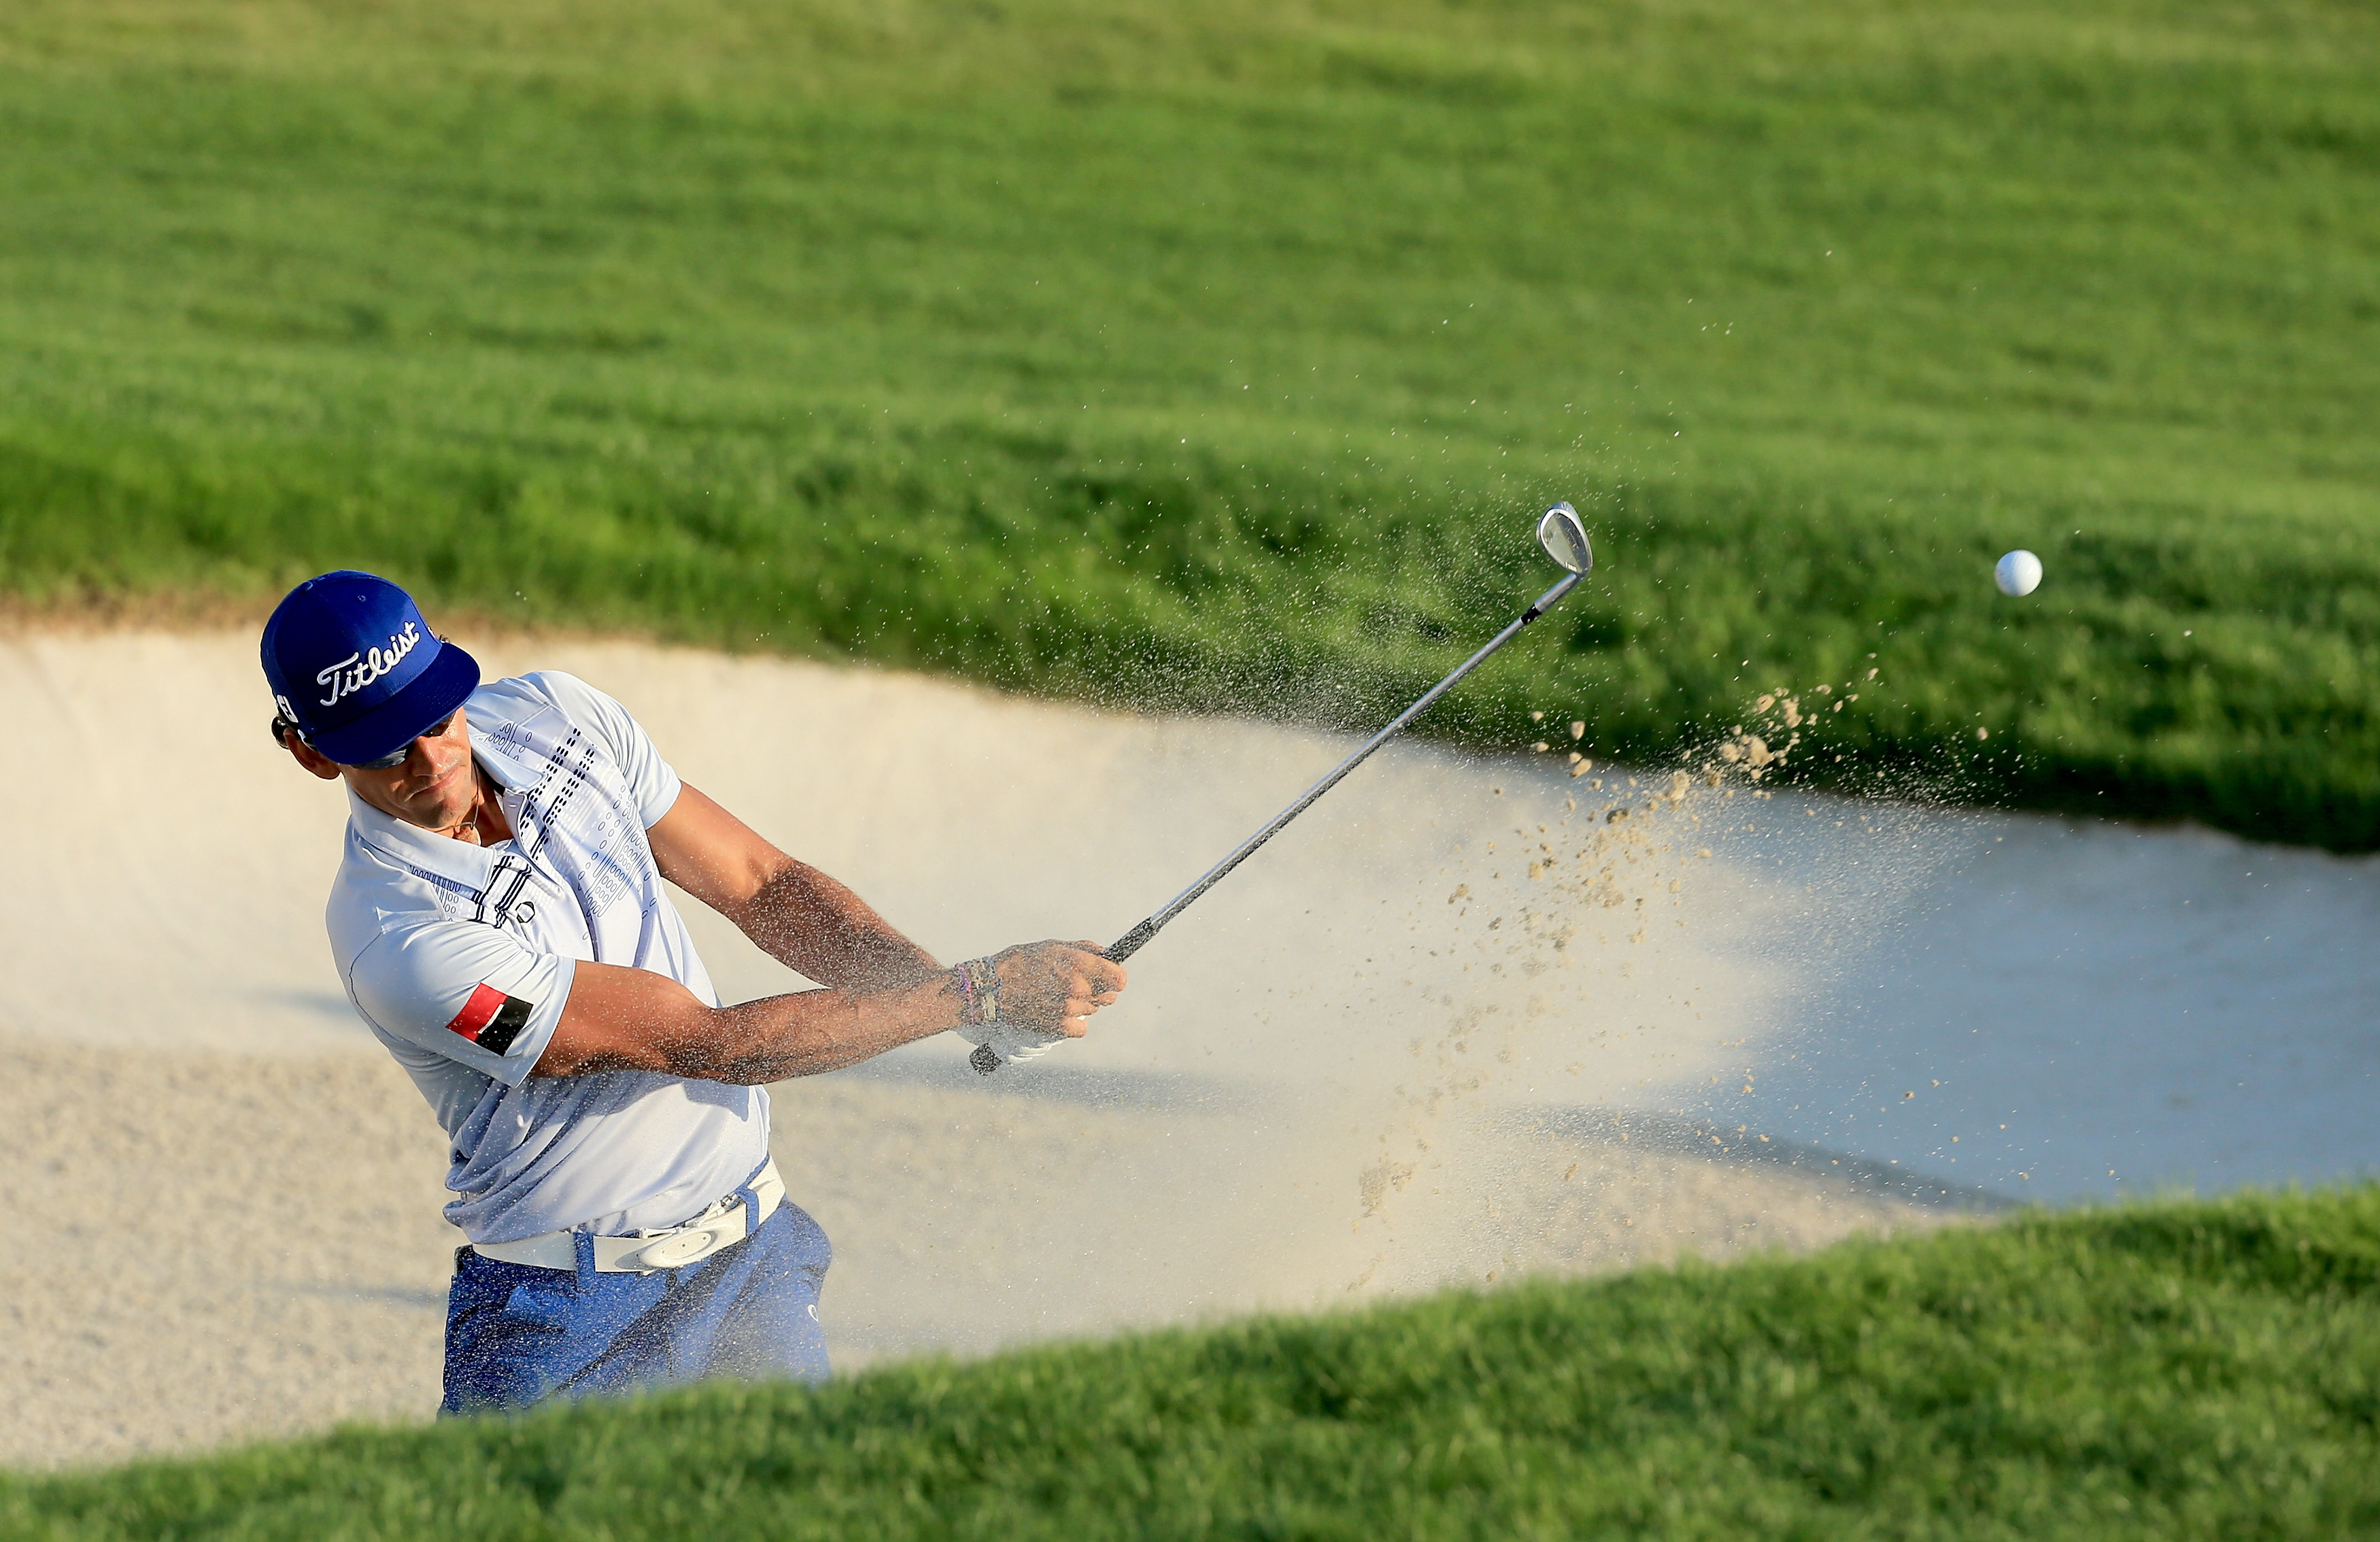 Rafa Cabrera-Bello of Spain plays his third shot at the par 5, 18th hole. Cabrera-Bello birdied four of his last five holes to finish 7-under with a 65. He currently shares the lead with Henrik Stenson.